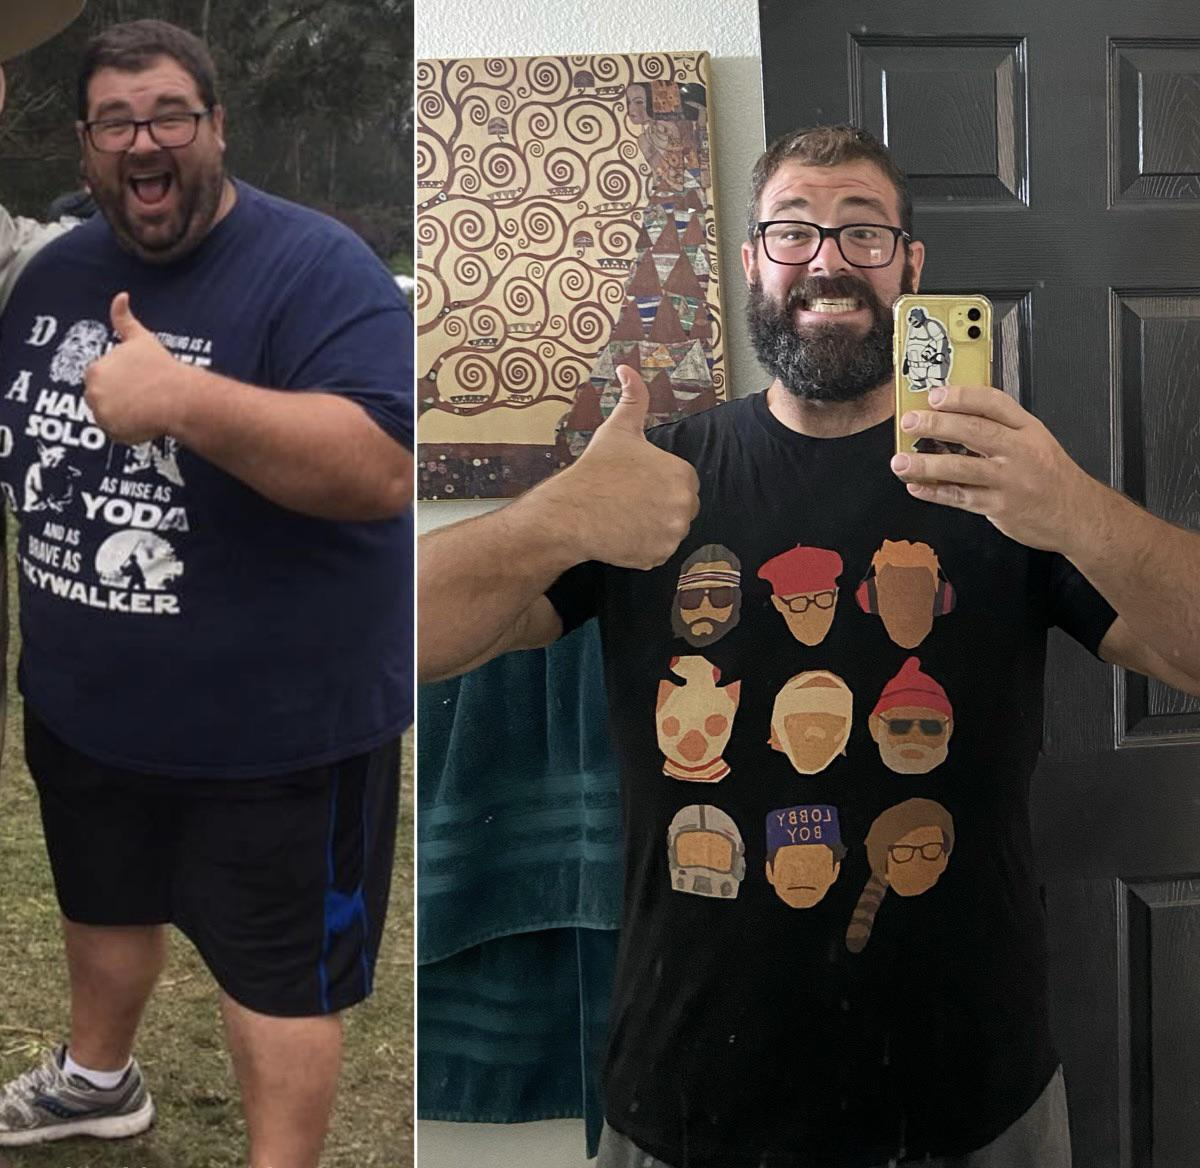 6 foot 1 Male Before and After 200 lbs Weight Loss 482 lbs to 282 lbs